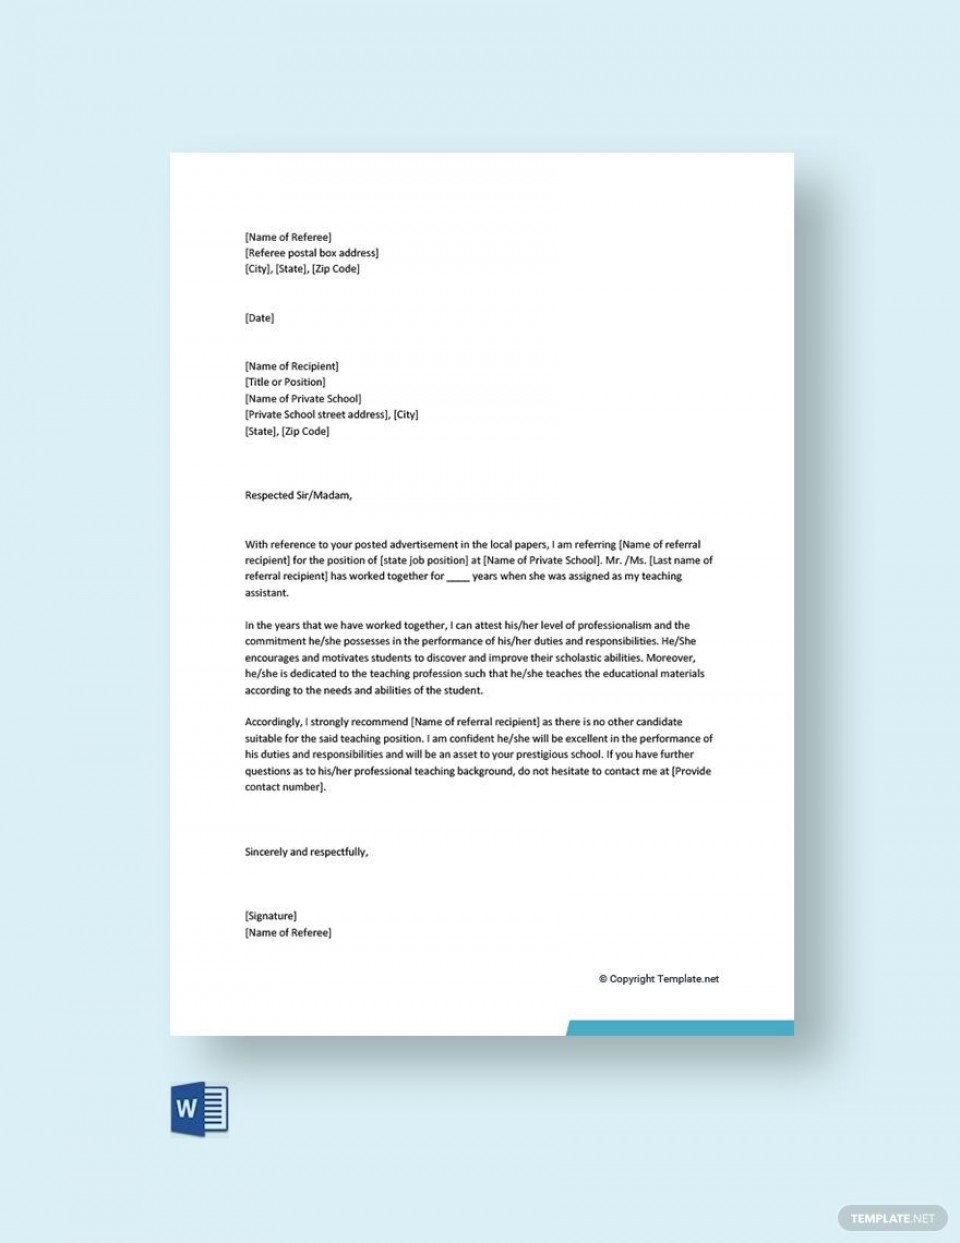 002 Unusual Free Reference Letter Template Download Image 960